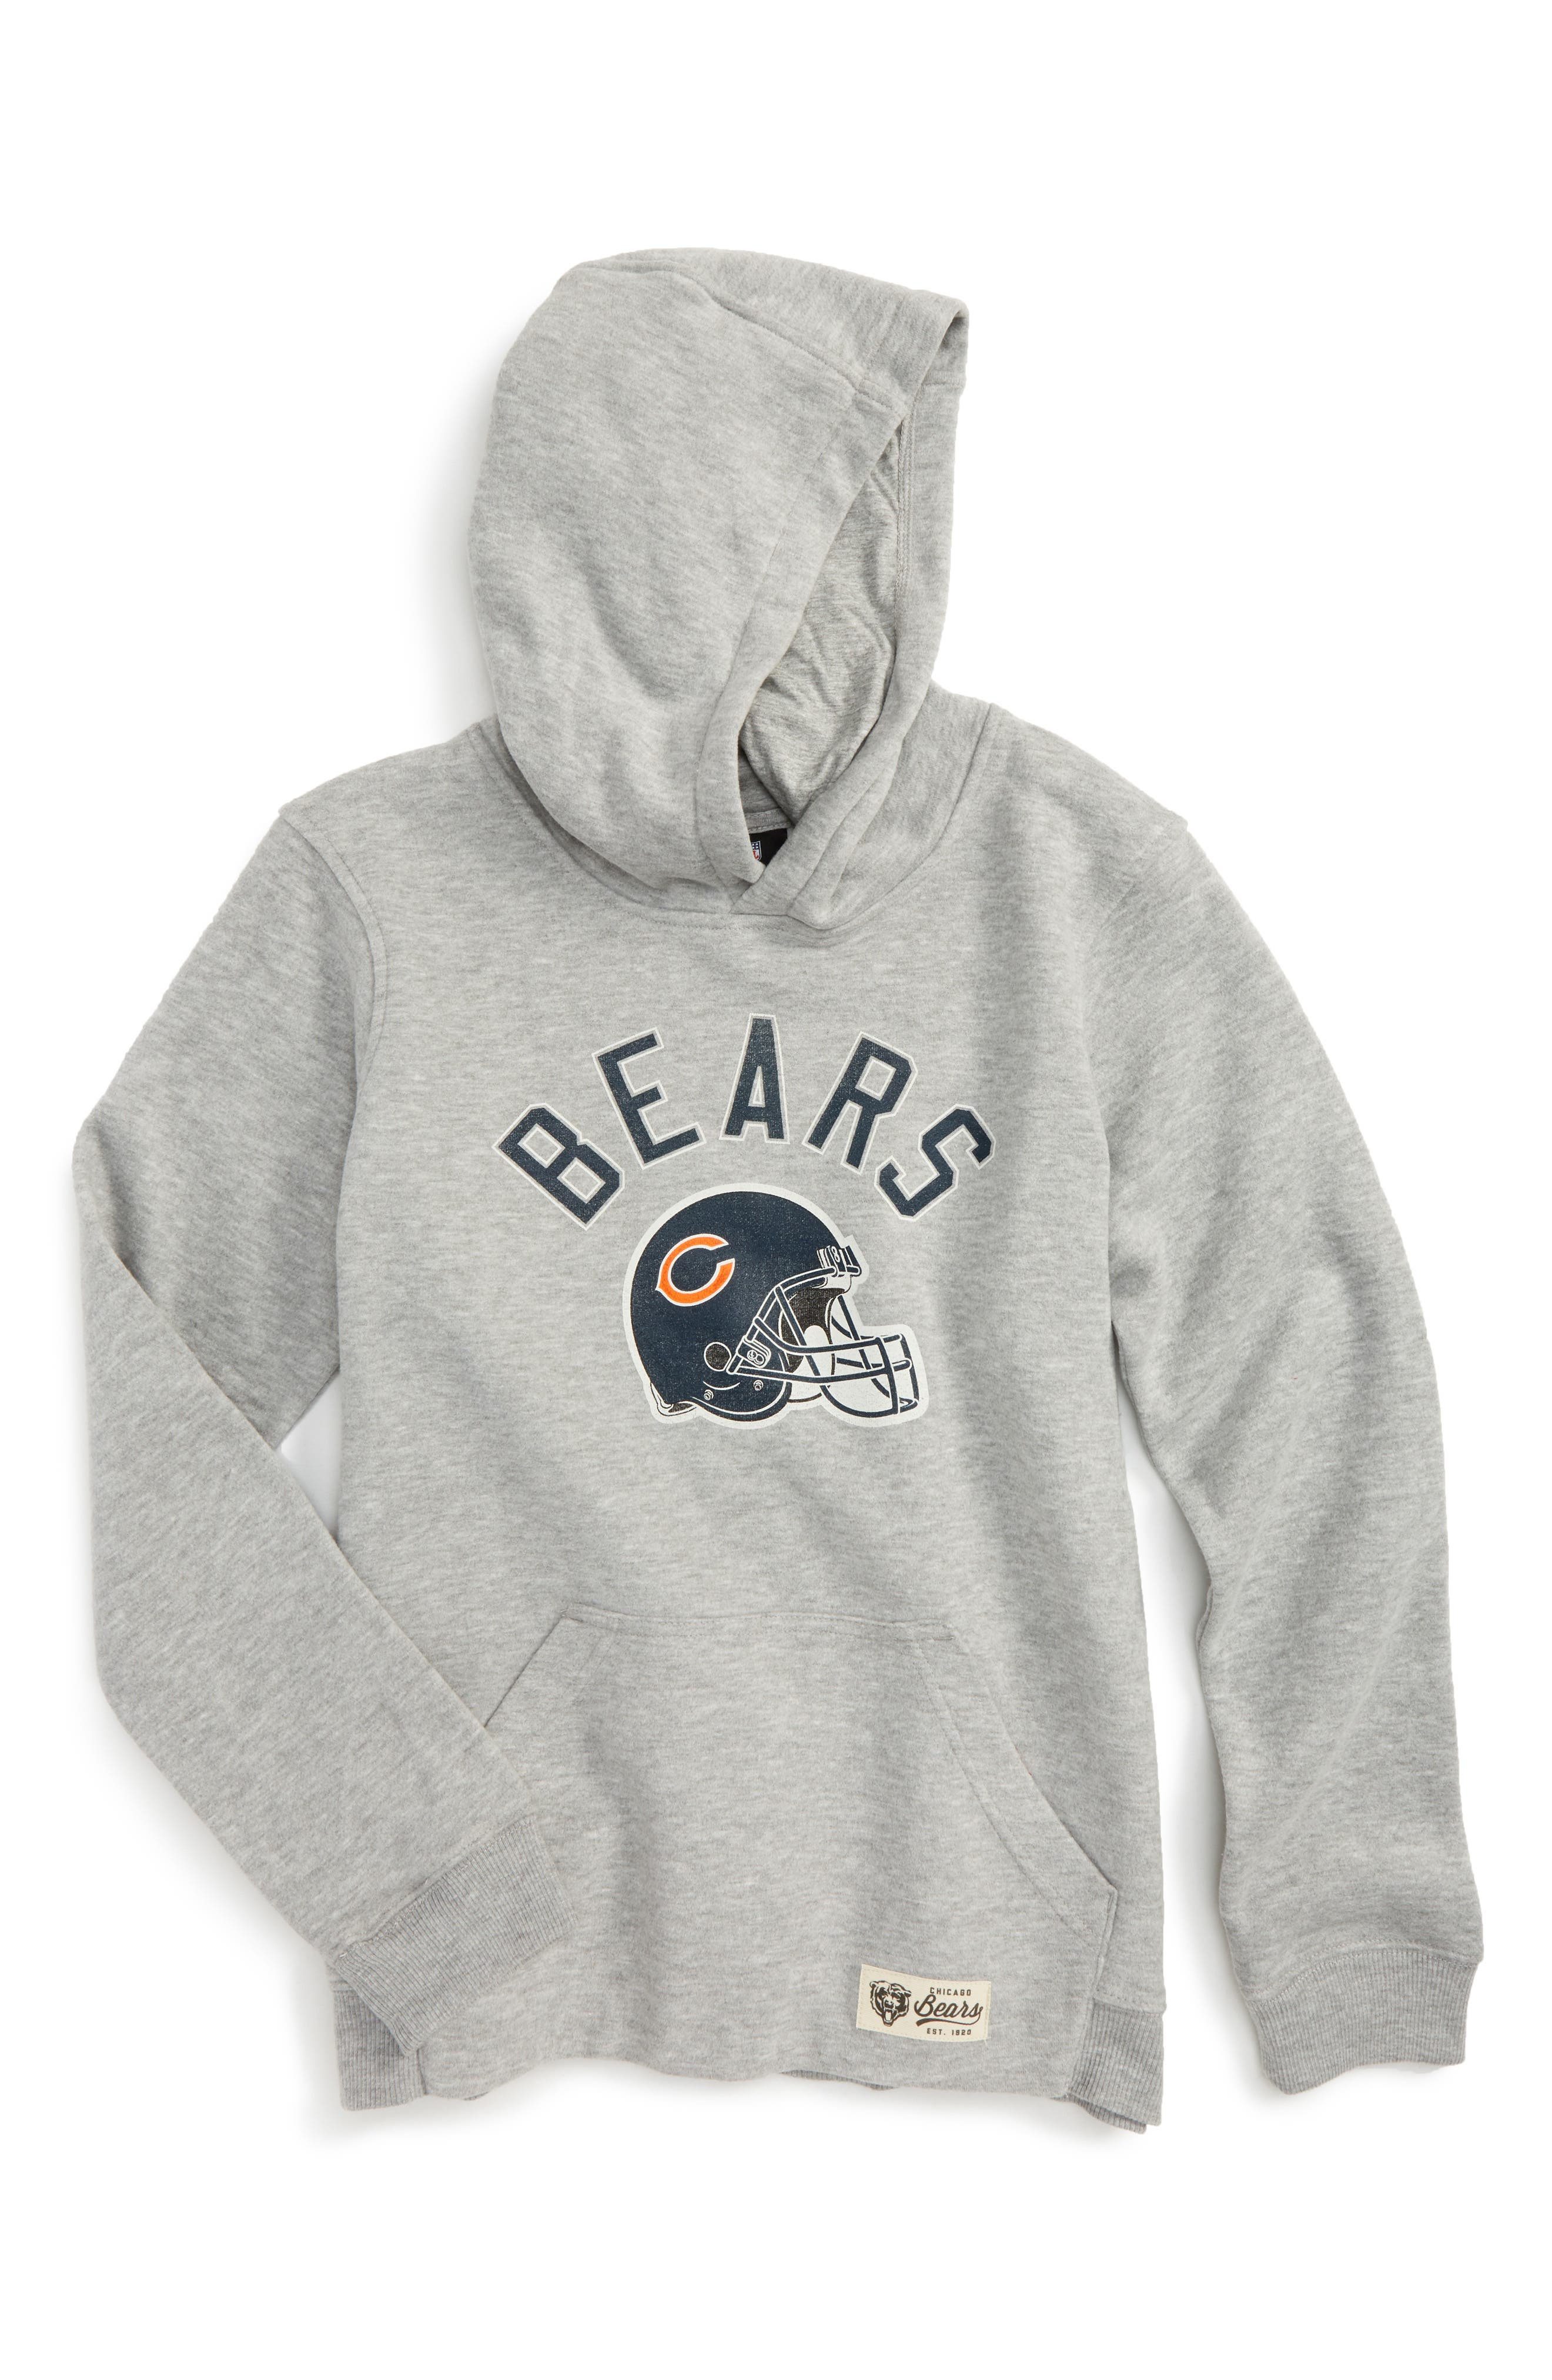 NFL Chicago Bears Pullover Hoodie,                             Main thumbnail 1, color,                             Heather Grey